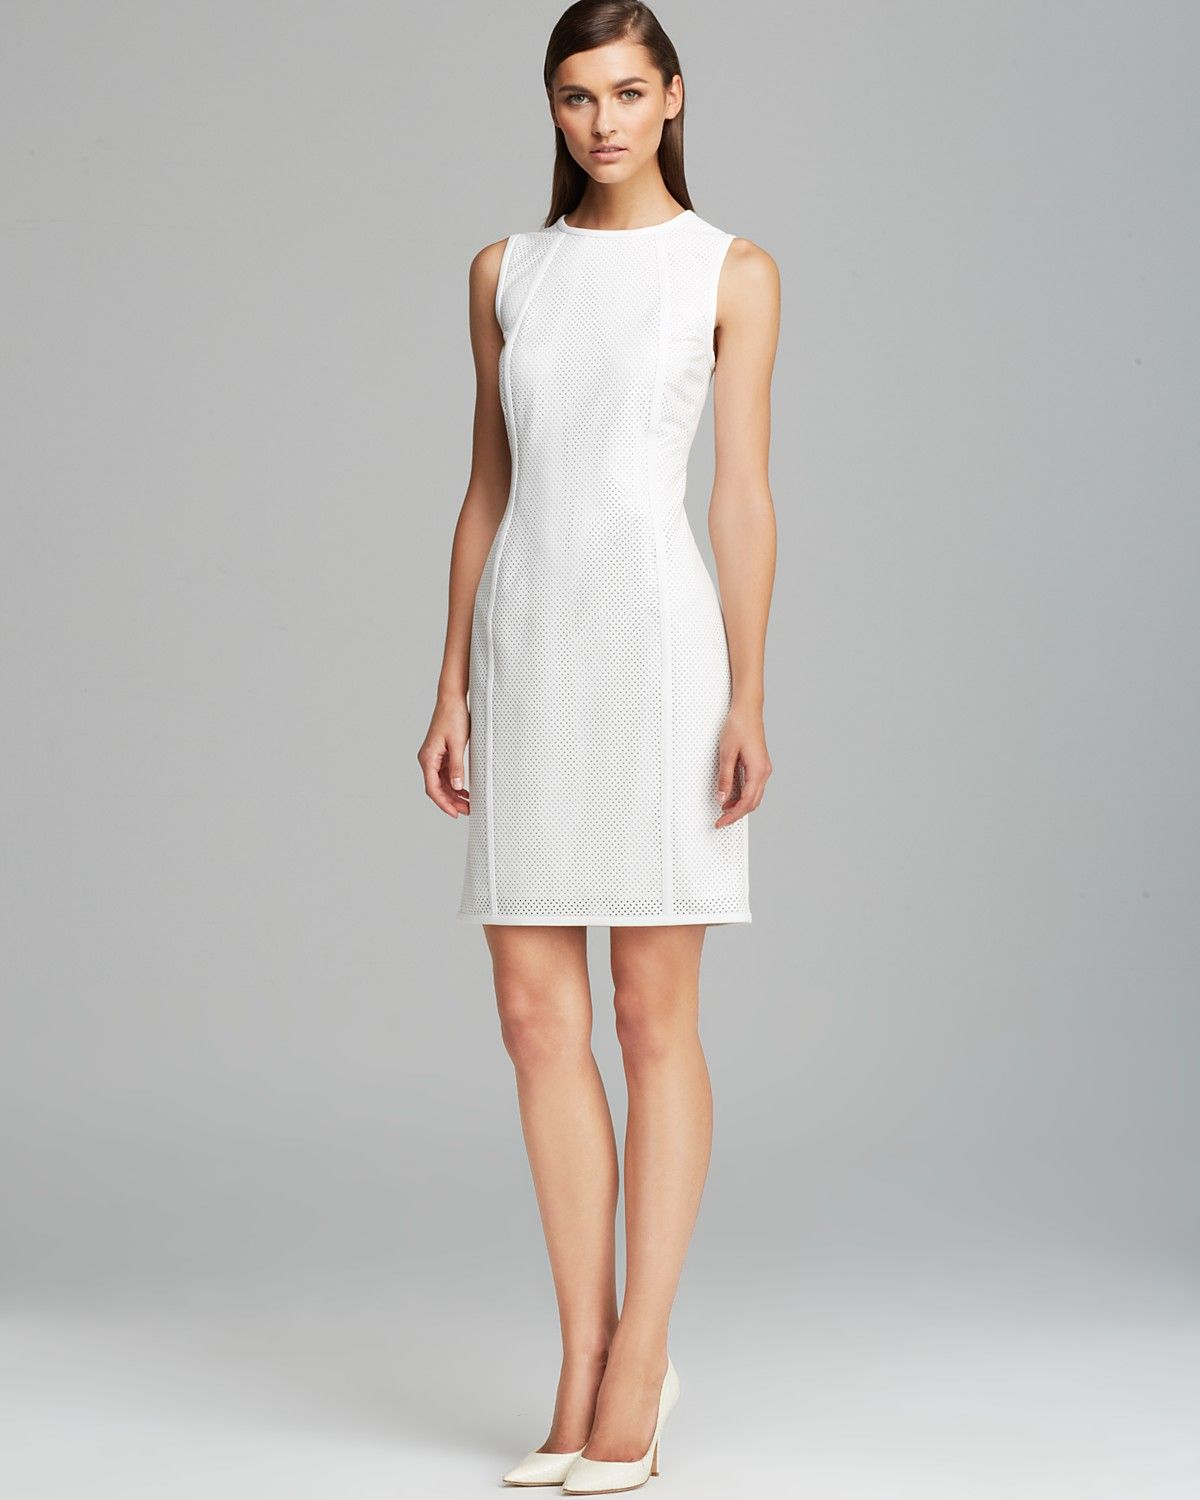 Calvin Klein Perforated Faux Leather Dress Women Dresses Bloomingdale S Leather Dress Women Faux Leather Dress Lace White Dress [ 1500 x 1200 Pixel ]